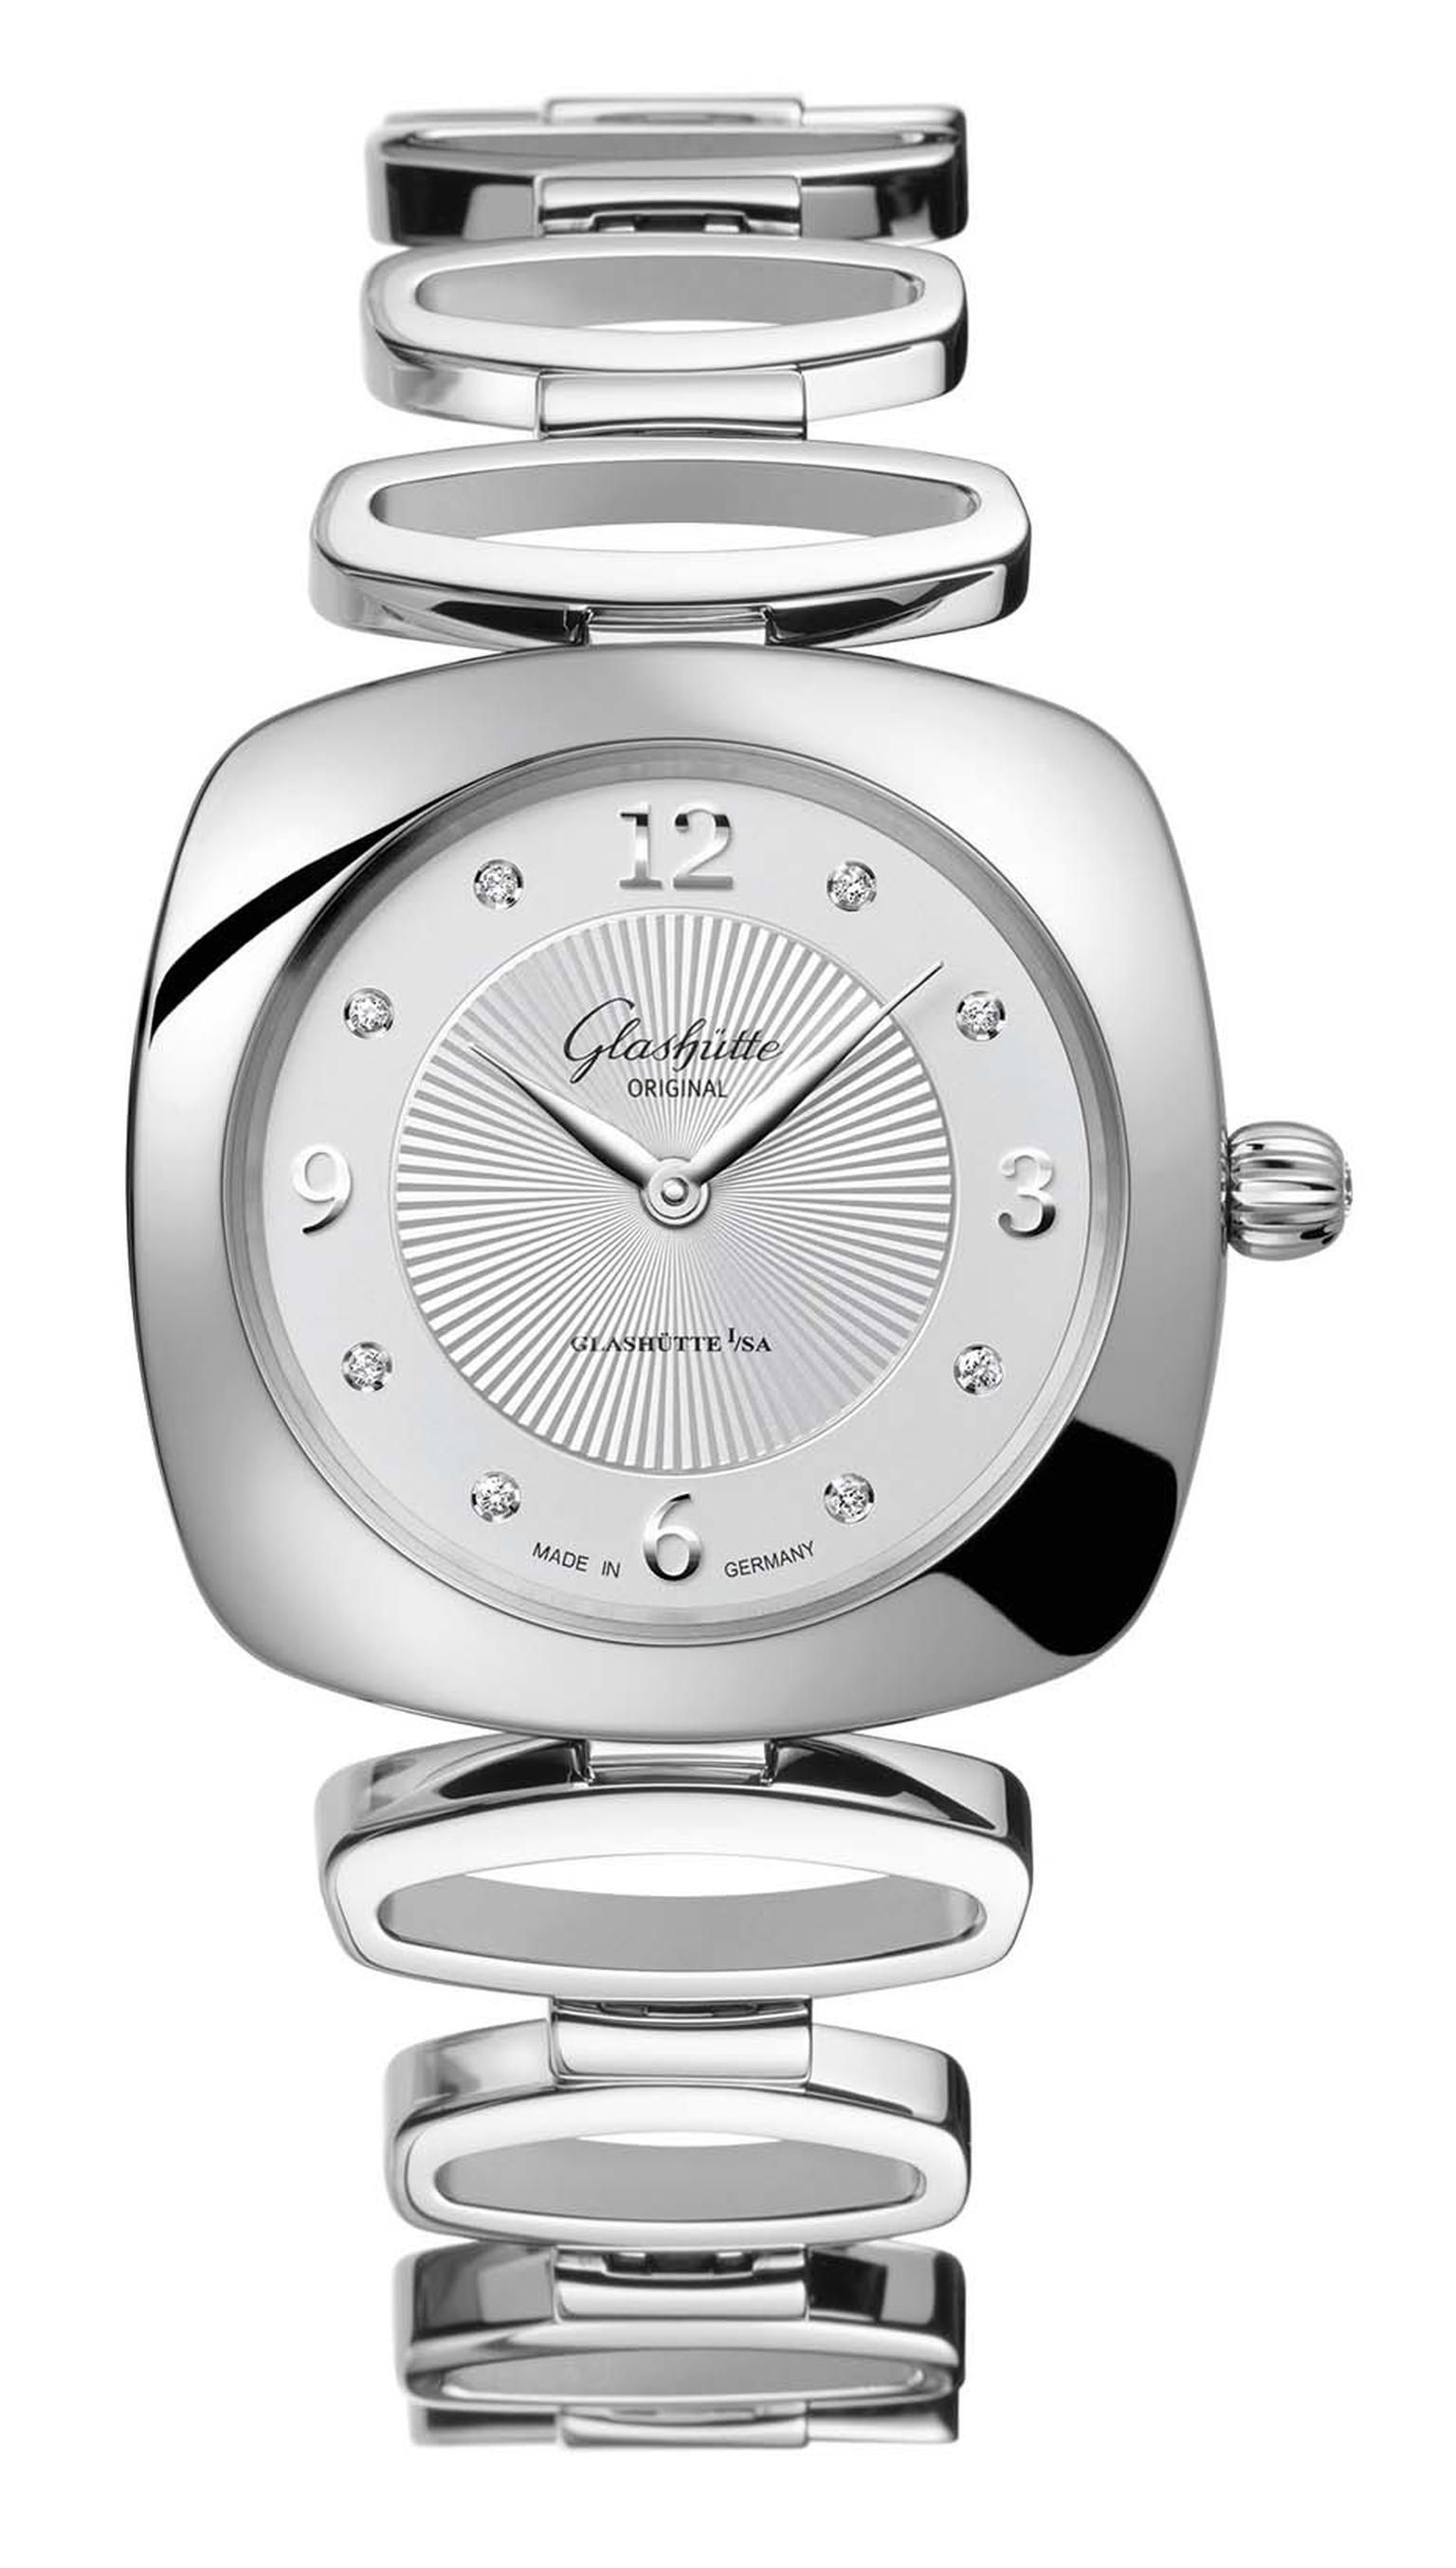 Glashütte Pavonina ladies' watch in stainless steel with a galvanized silver dial and eight diamonds on the dial. The open-linked steel bracelet has a nice 1970s groove but can be exchanged for a dressier satin strap.